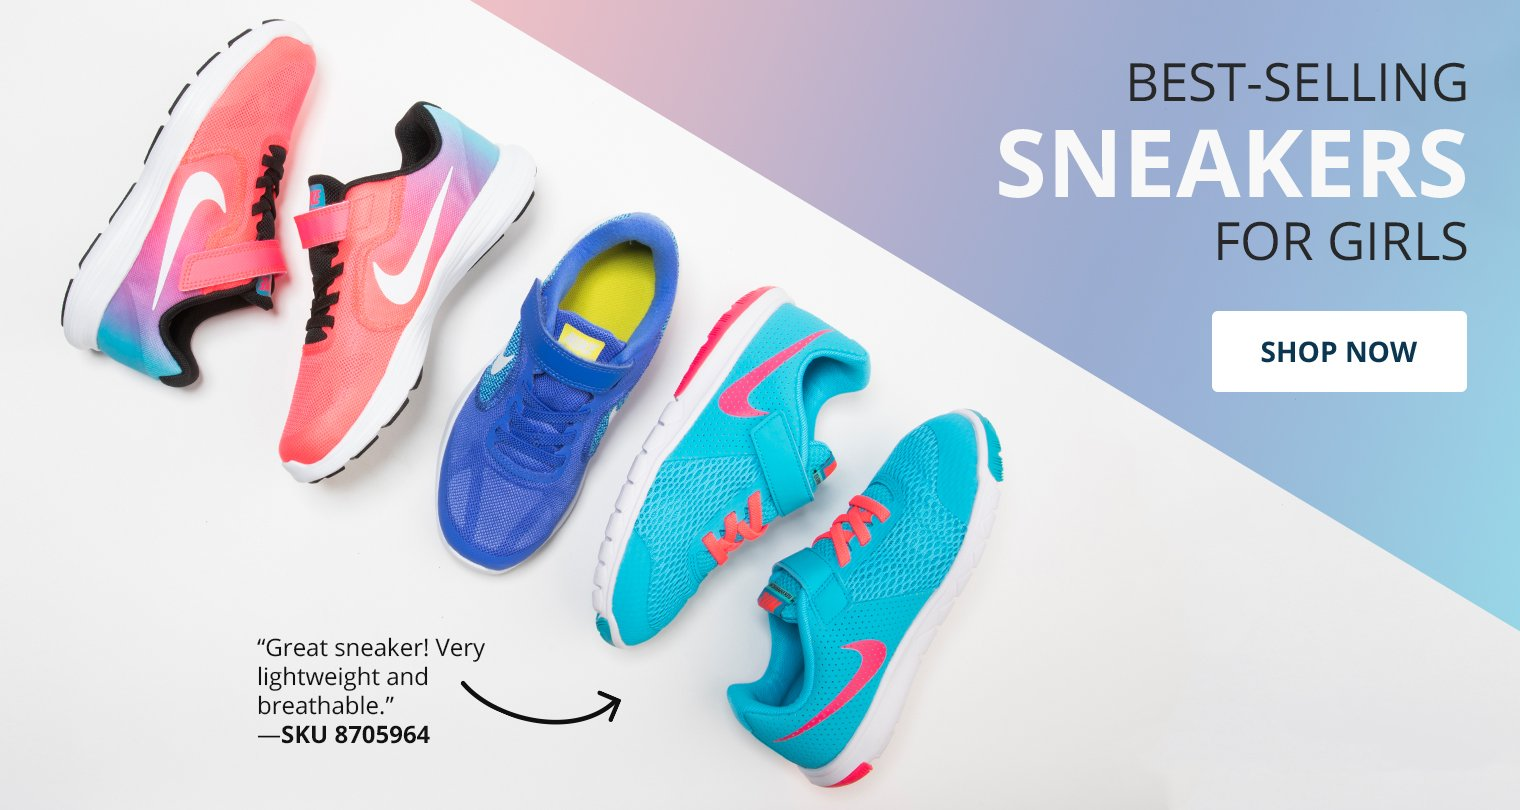 Best Selling sneakers for girls. Shop now.